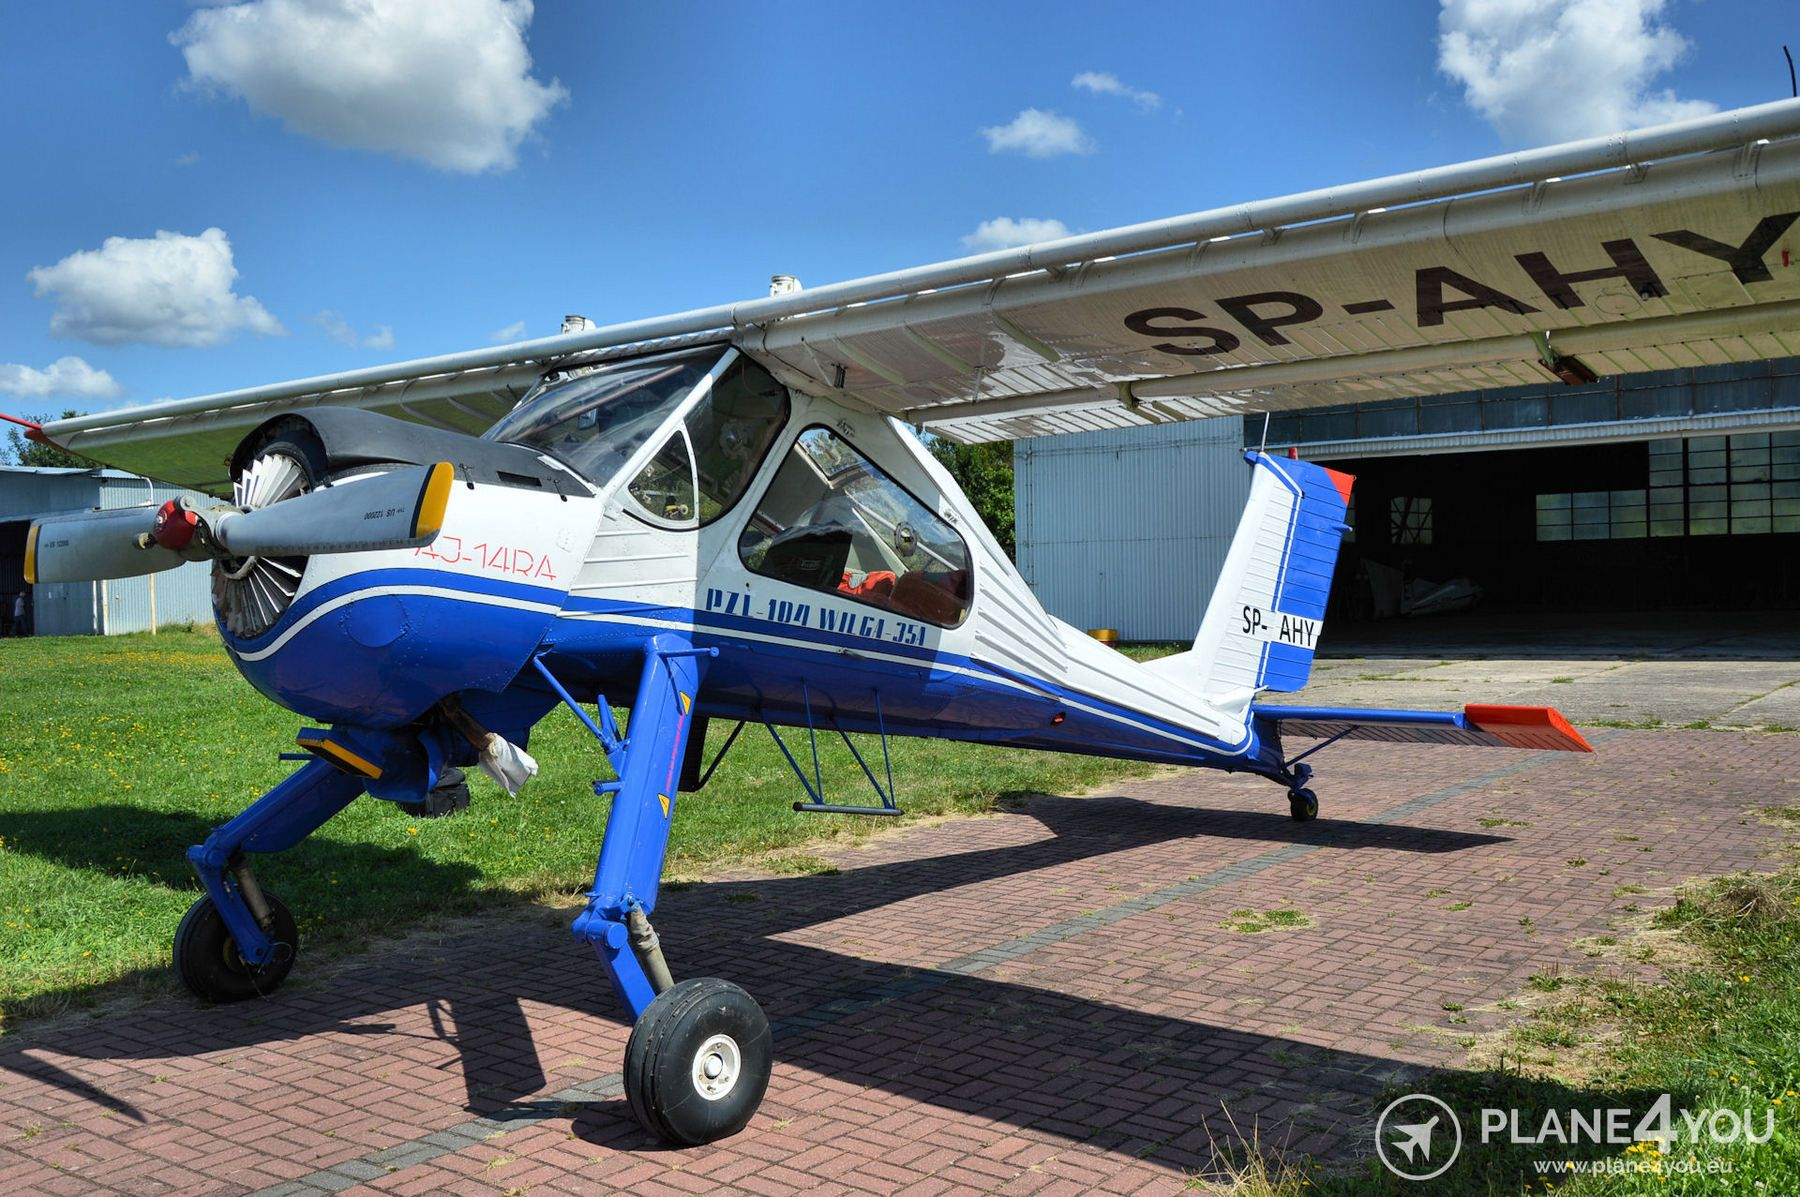 1989 PZL 104 Wilga 35A for sale in Poland => www